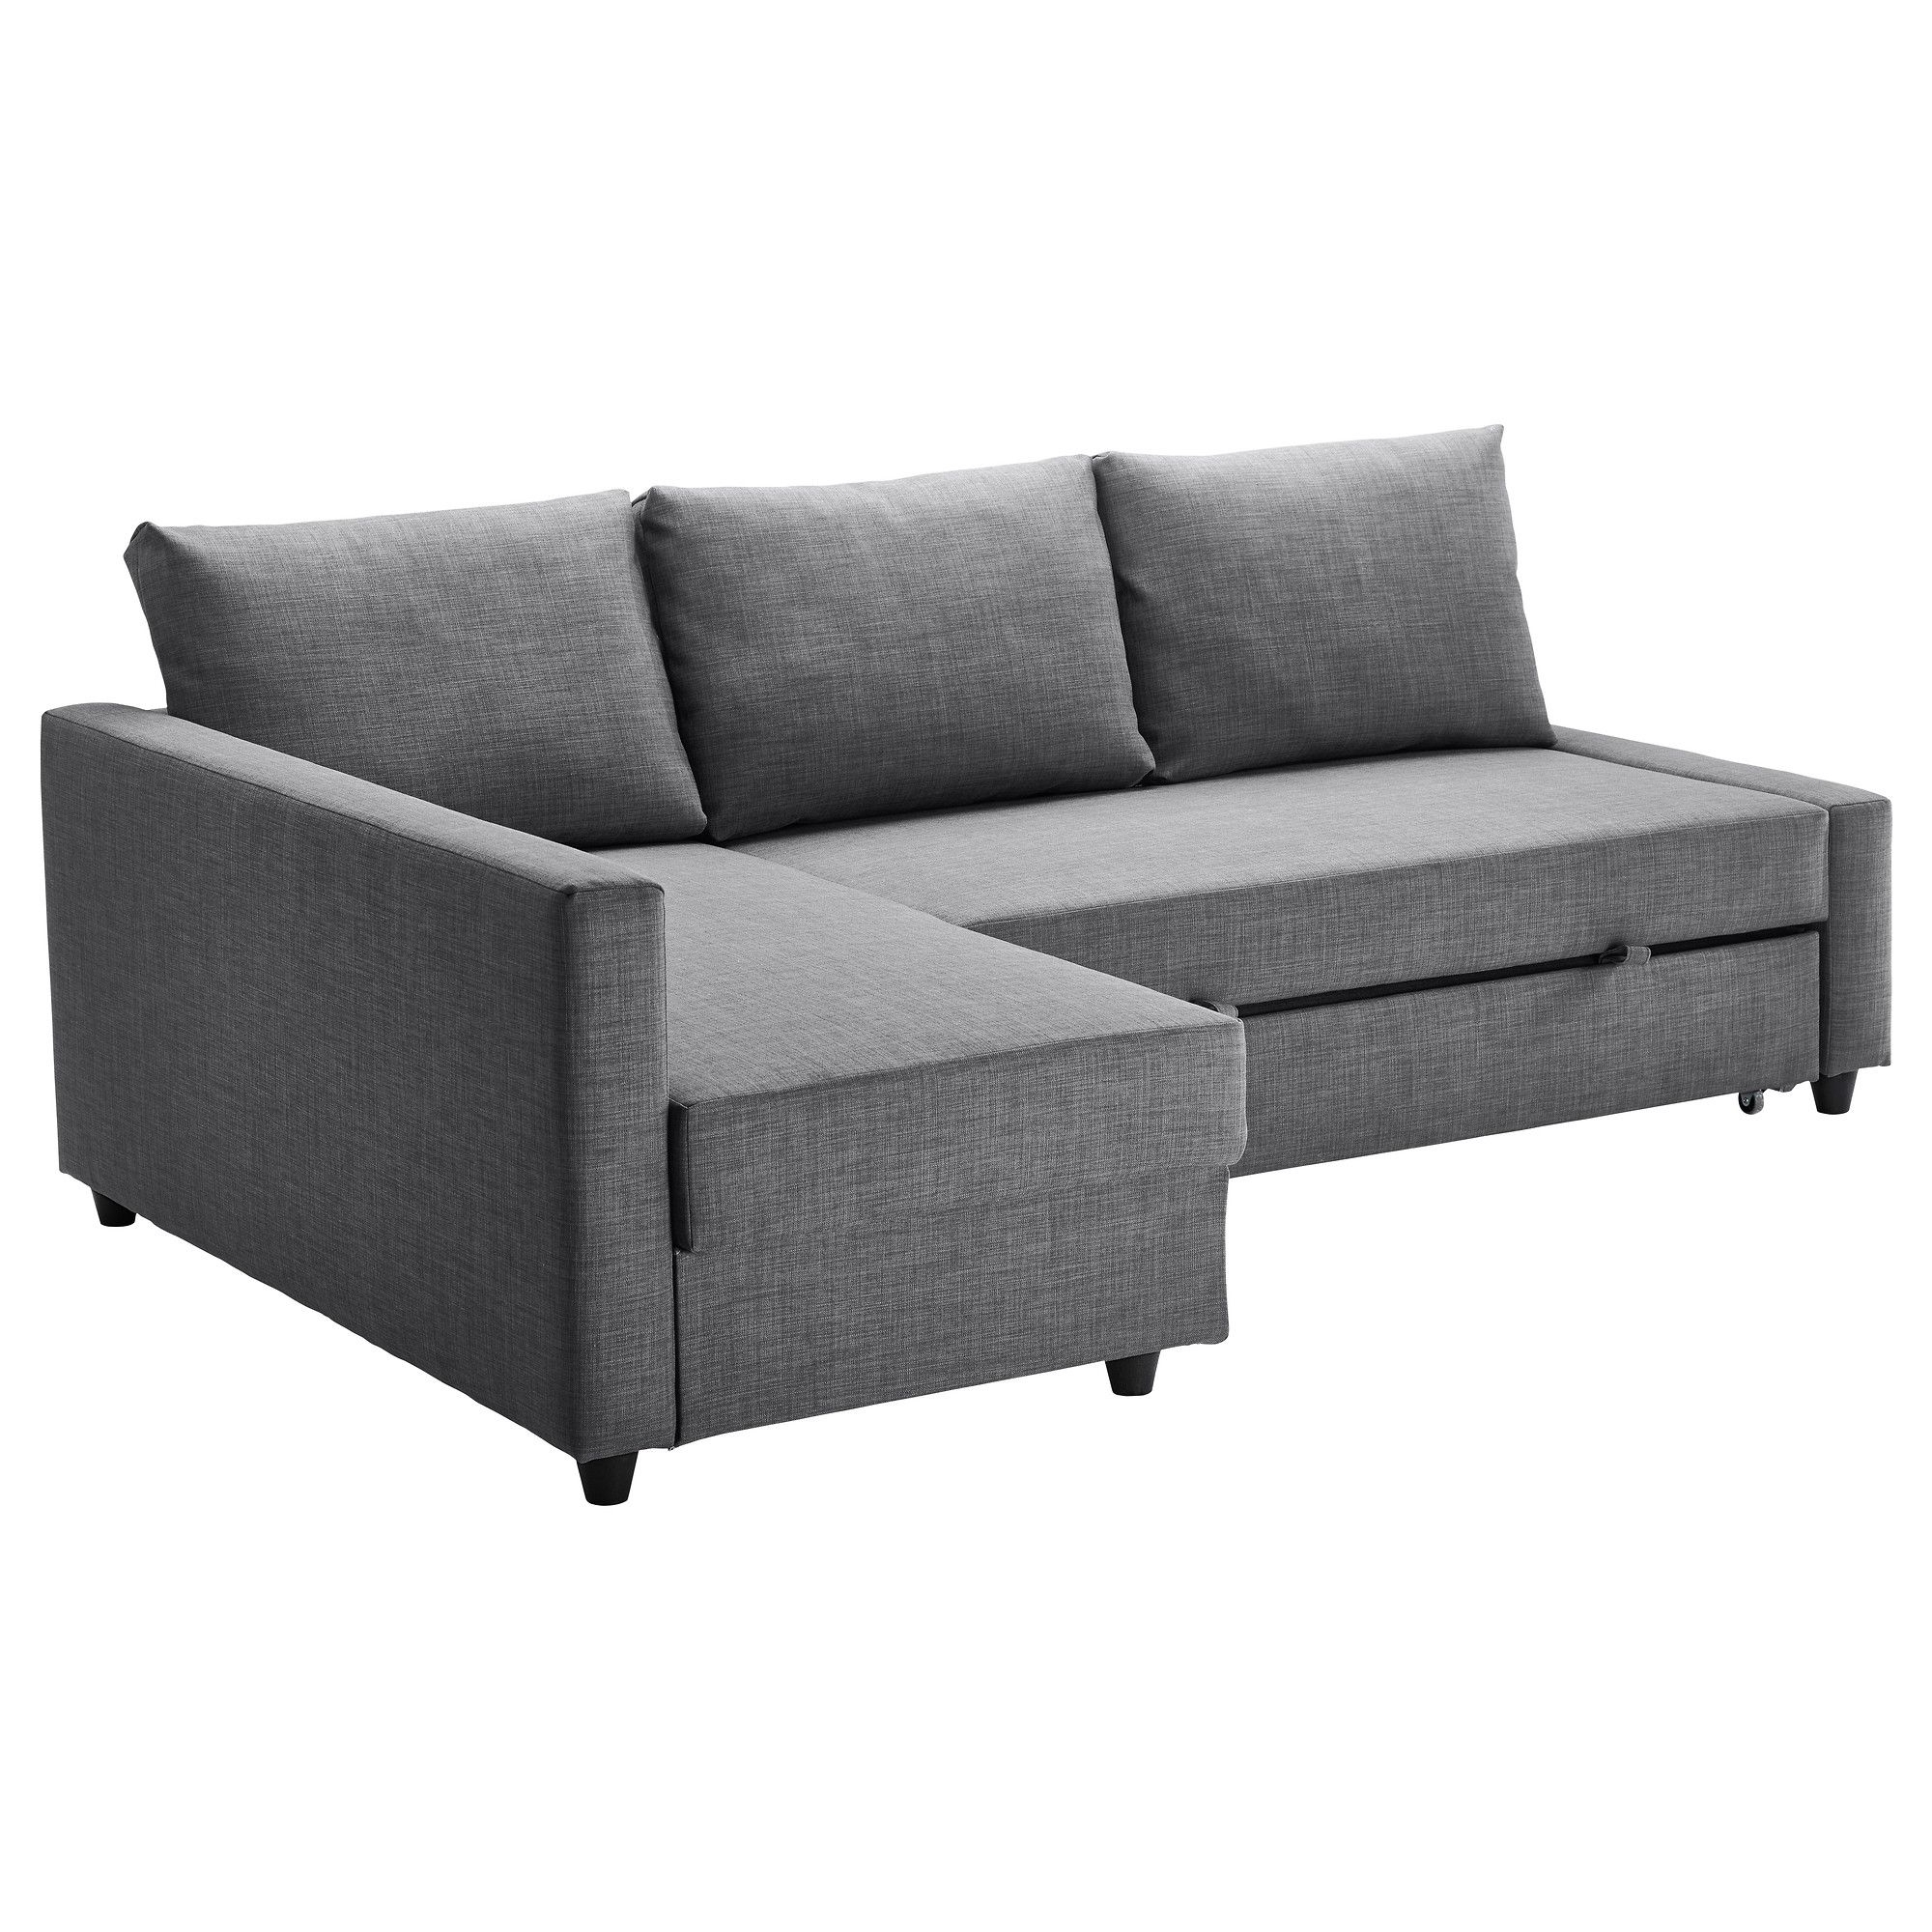 Sleeper Sofas With Chaise Pertaining To Most Popular Ikea – Friheten, Sofa Bed With Chaise, Skiftebo Dark Gray, , , You (View 7 of 15)